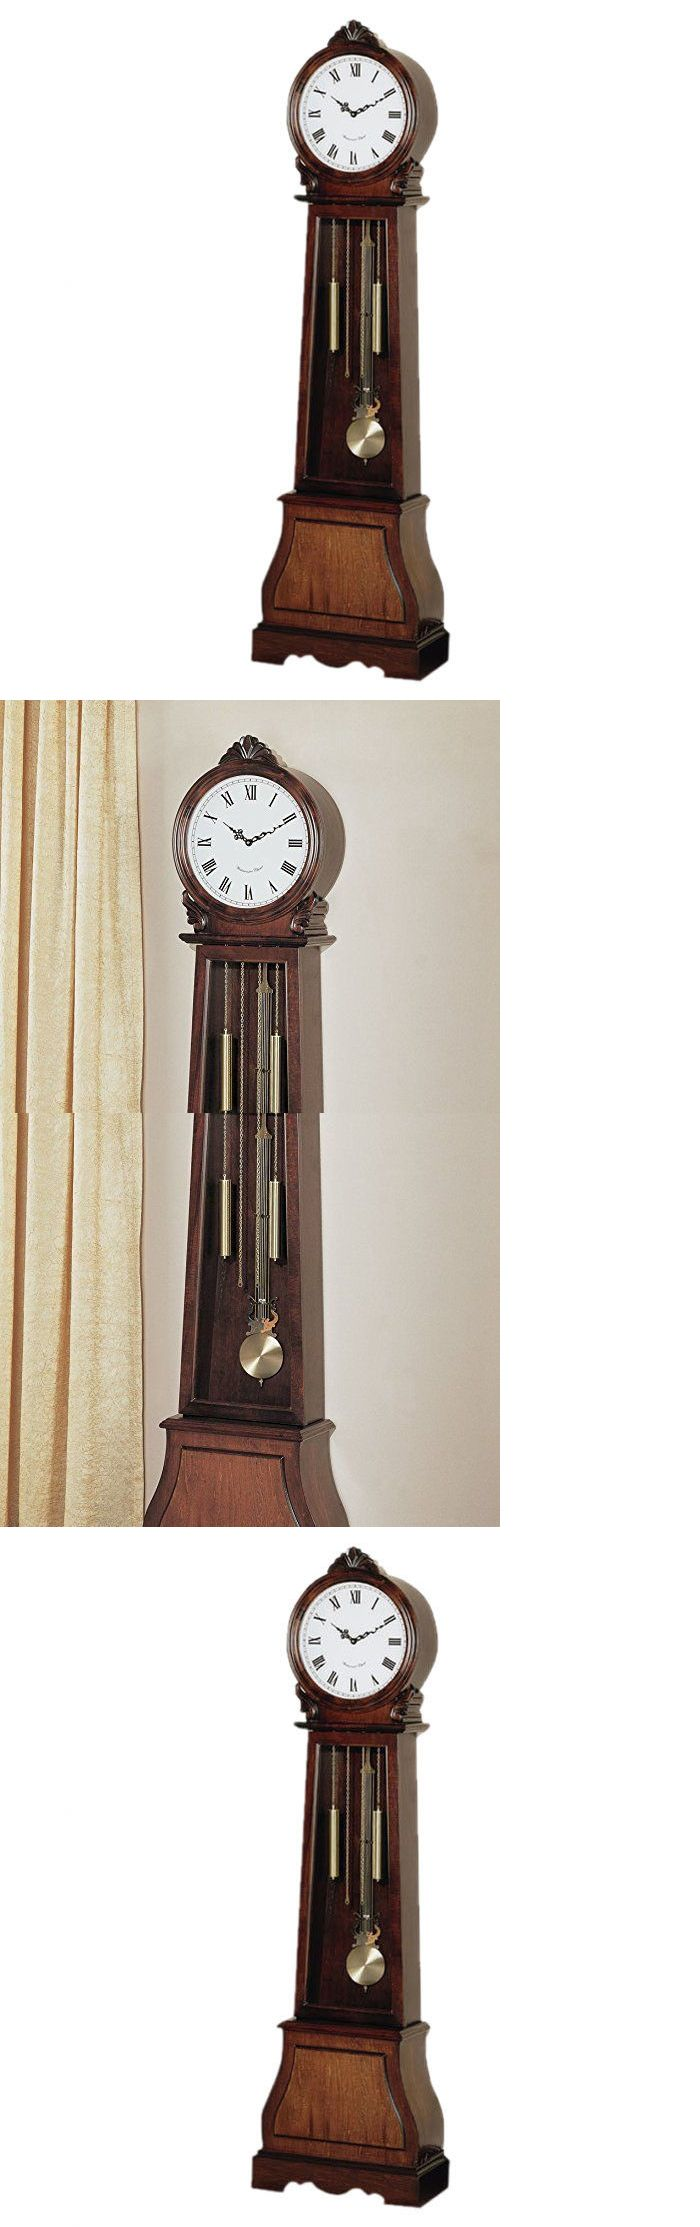 Grandfather Clocks 20559: Grandfather Clocks For Sale Roman Numeral Clock Wall Antique Vintage Chimes Wood -> BUY IT NOW ONLY: $434.96 on eBay!